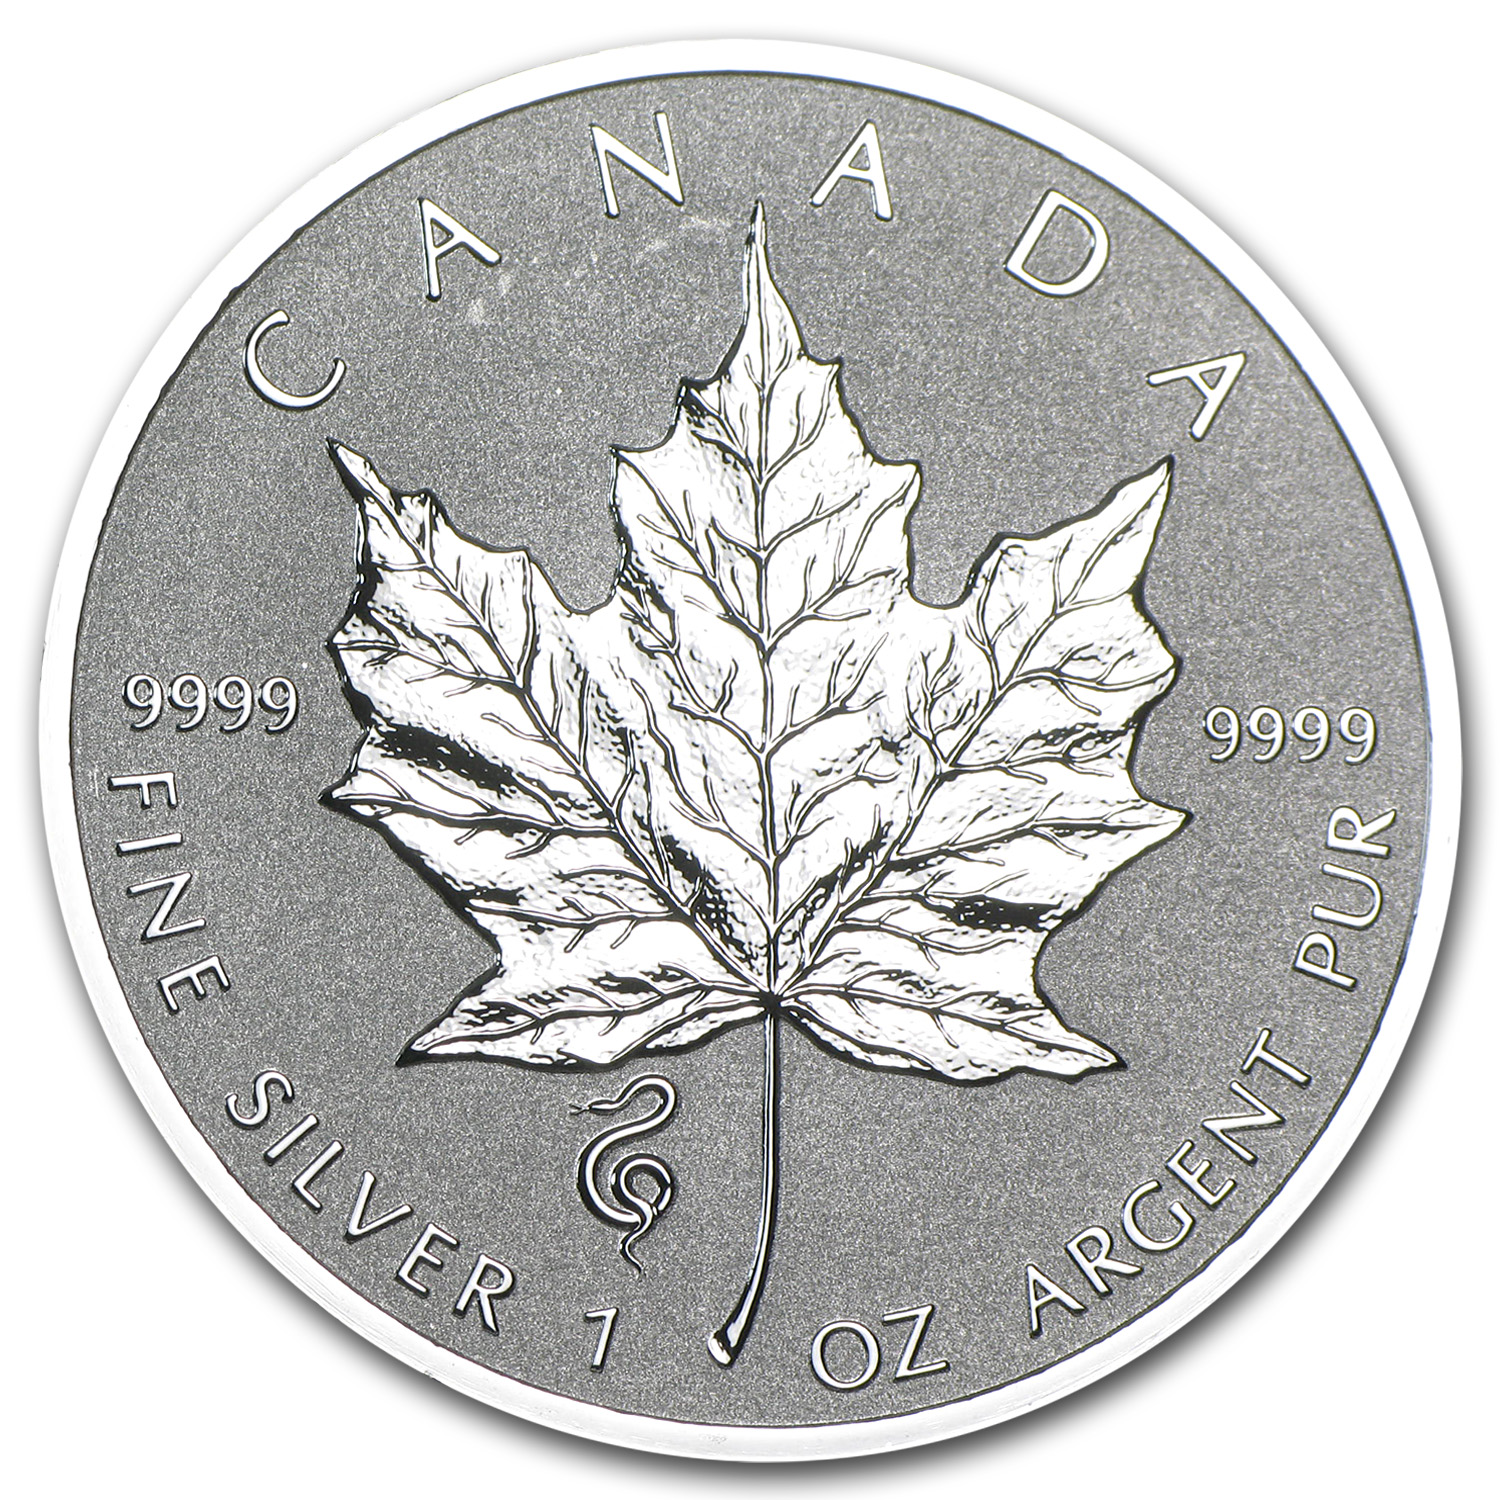 2013 Canada 1 oz Silver Maple Leaf Snake Privy